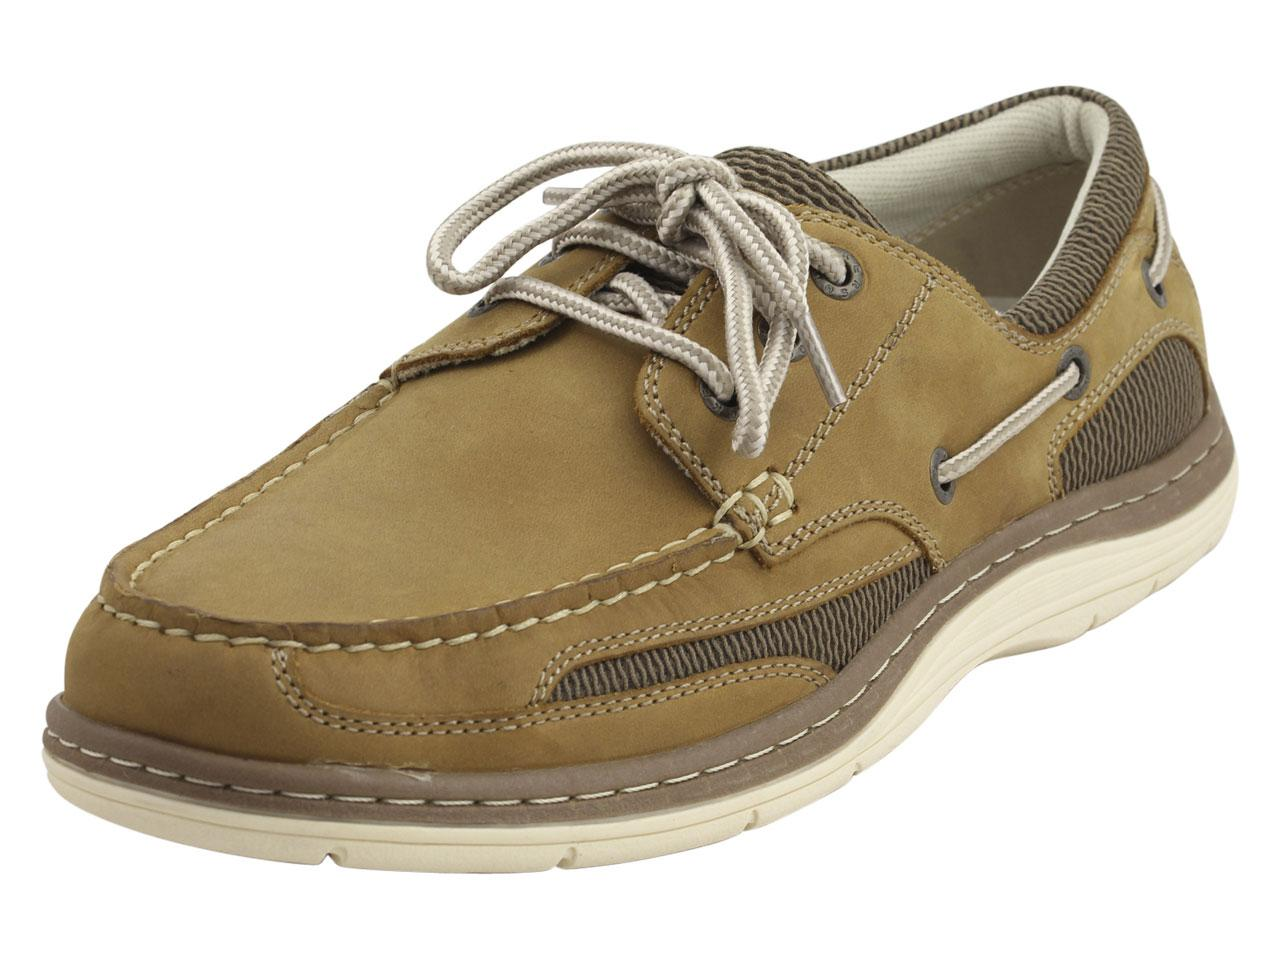 Image of Dockers Men's Lakeport Memory Foam Loafers Boat Shoes - Brown - 11.5 D(M) US